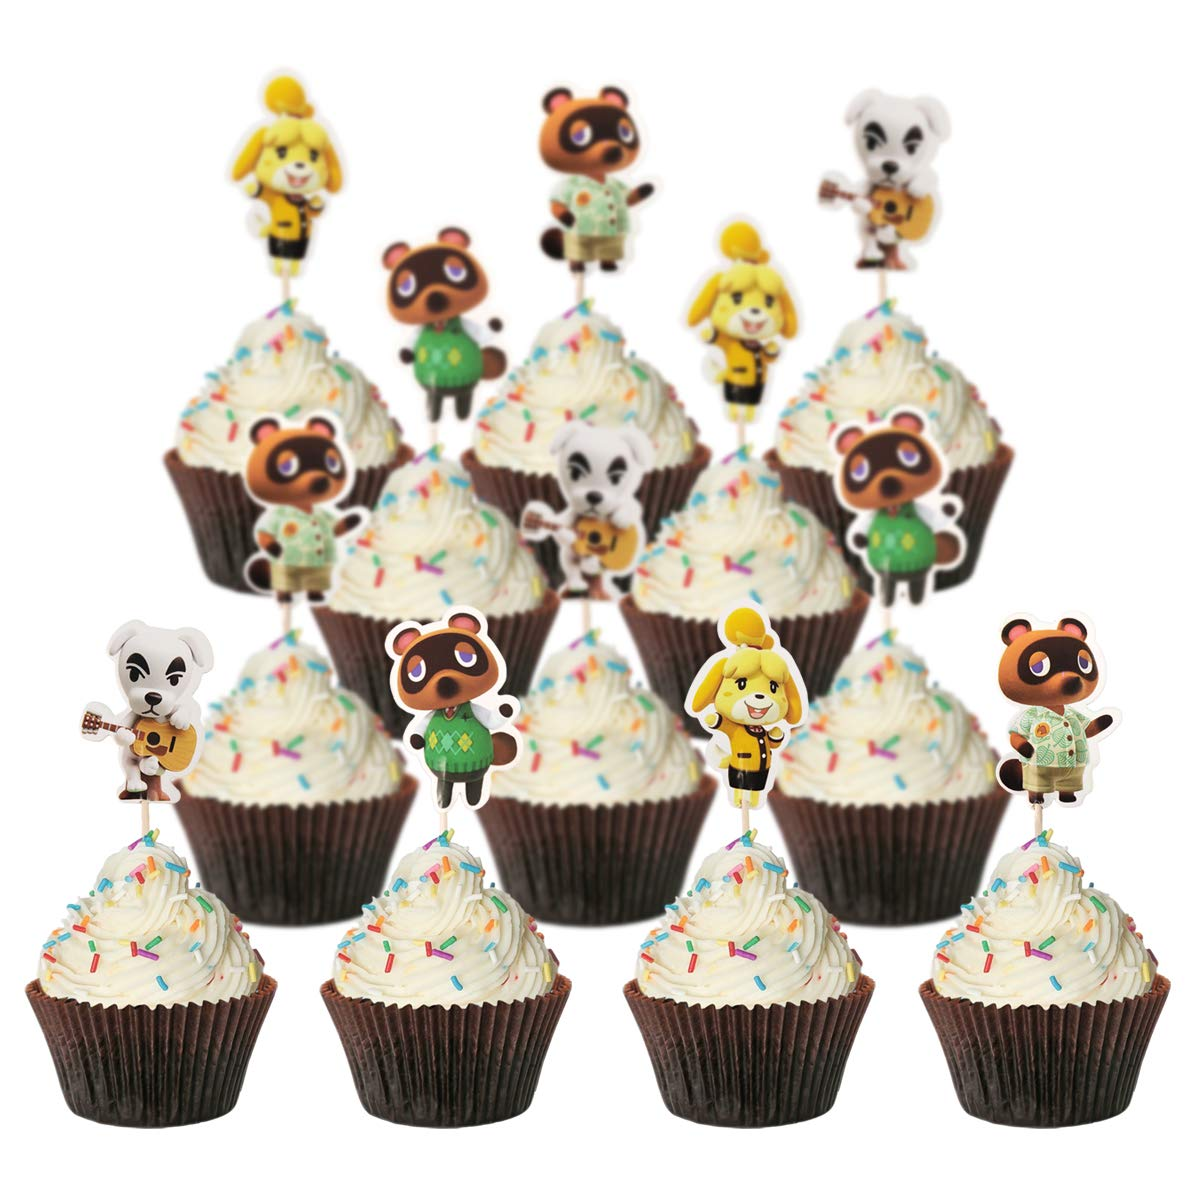 low-pricing Animal Crossing Cake Beauty products topper for birthday cake children's party